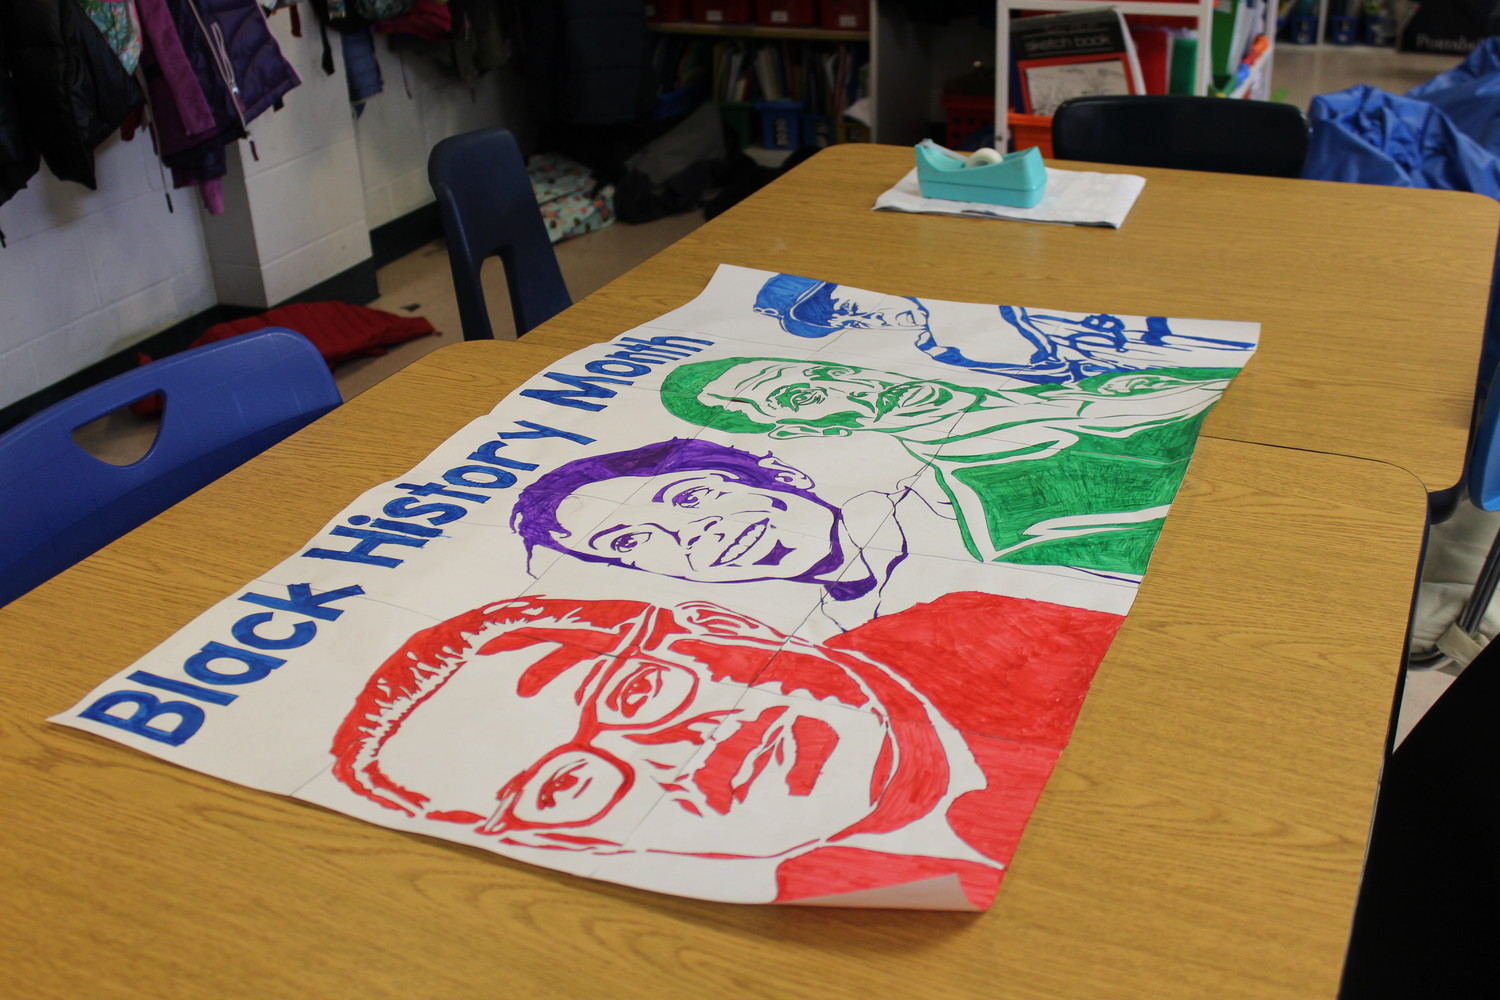 The fourth-grade students each colored a square to create a poster of influential African American figures throughout history.